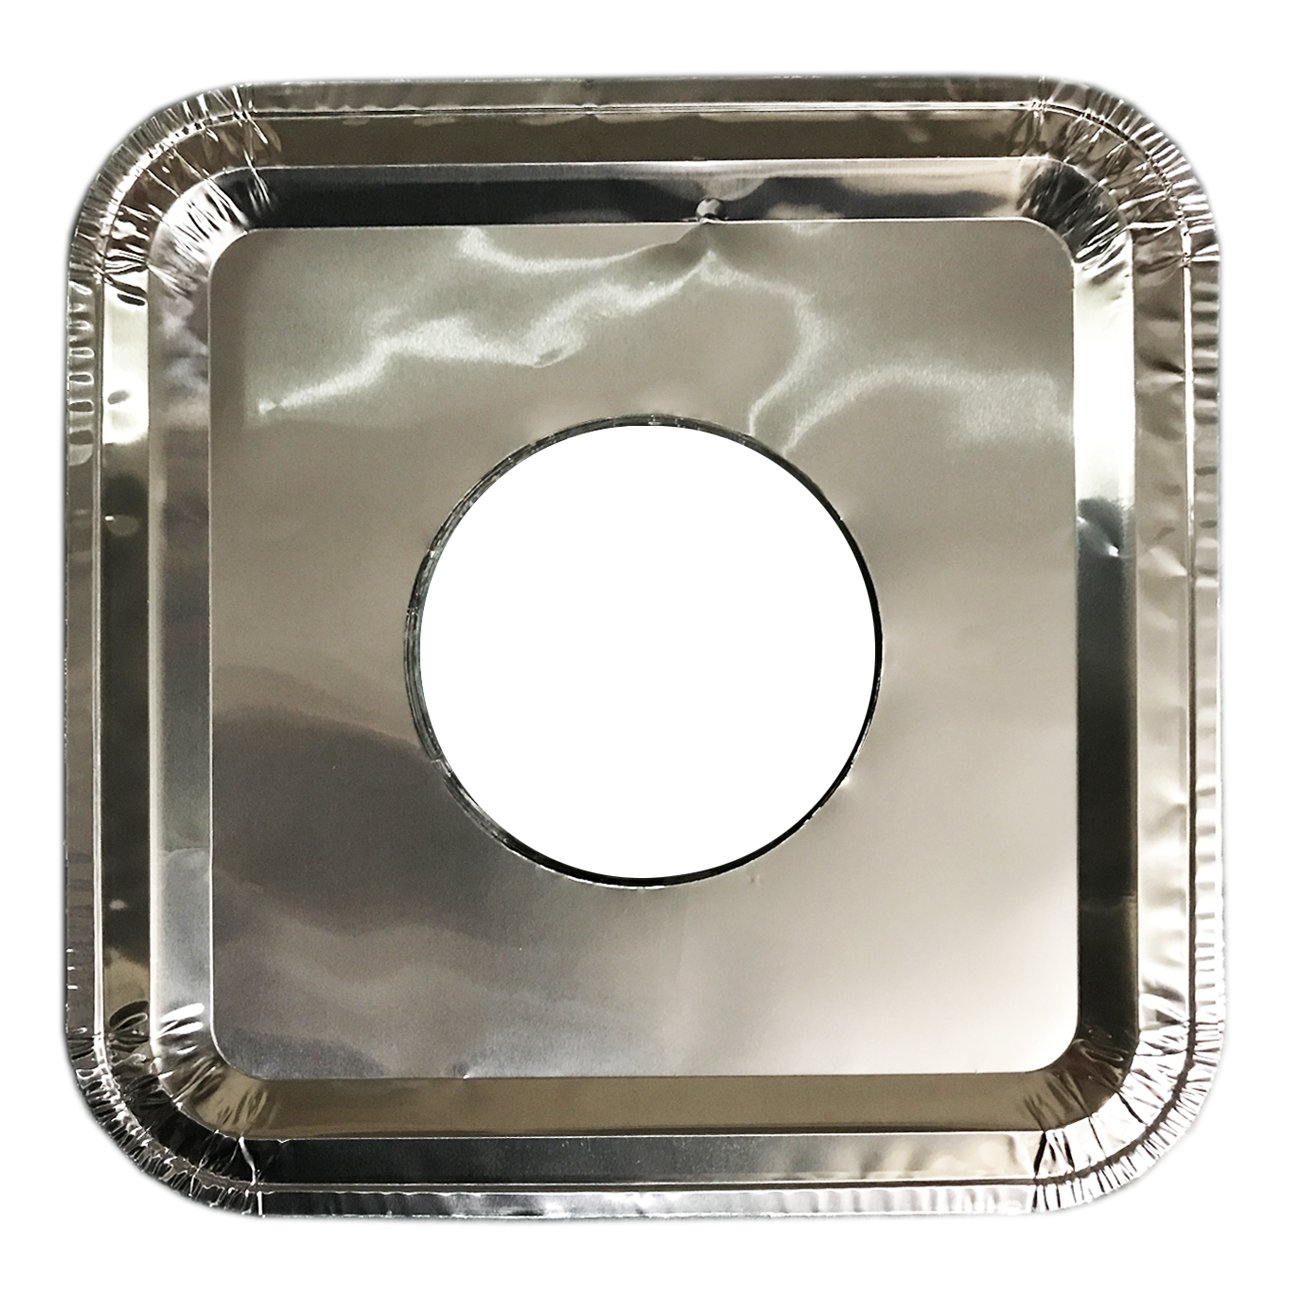 40 PC Aluminum Foil Square Gas Burner Disposable Heavy Thick Quality Bib Liners Covers (8.5'' Square) from Cavalier